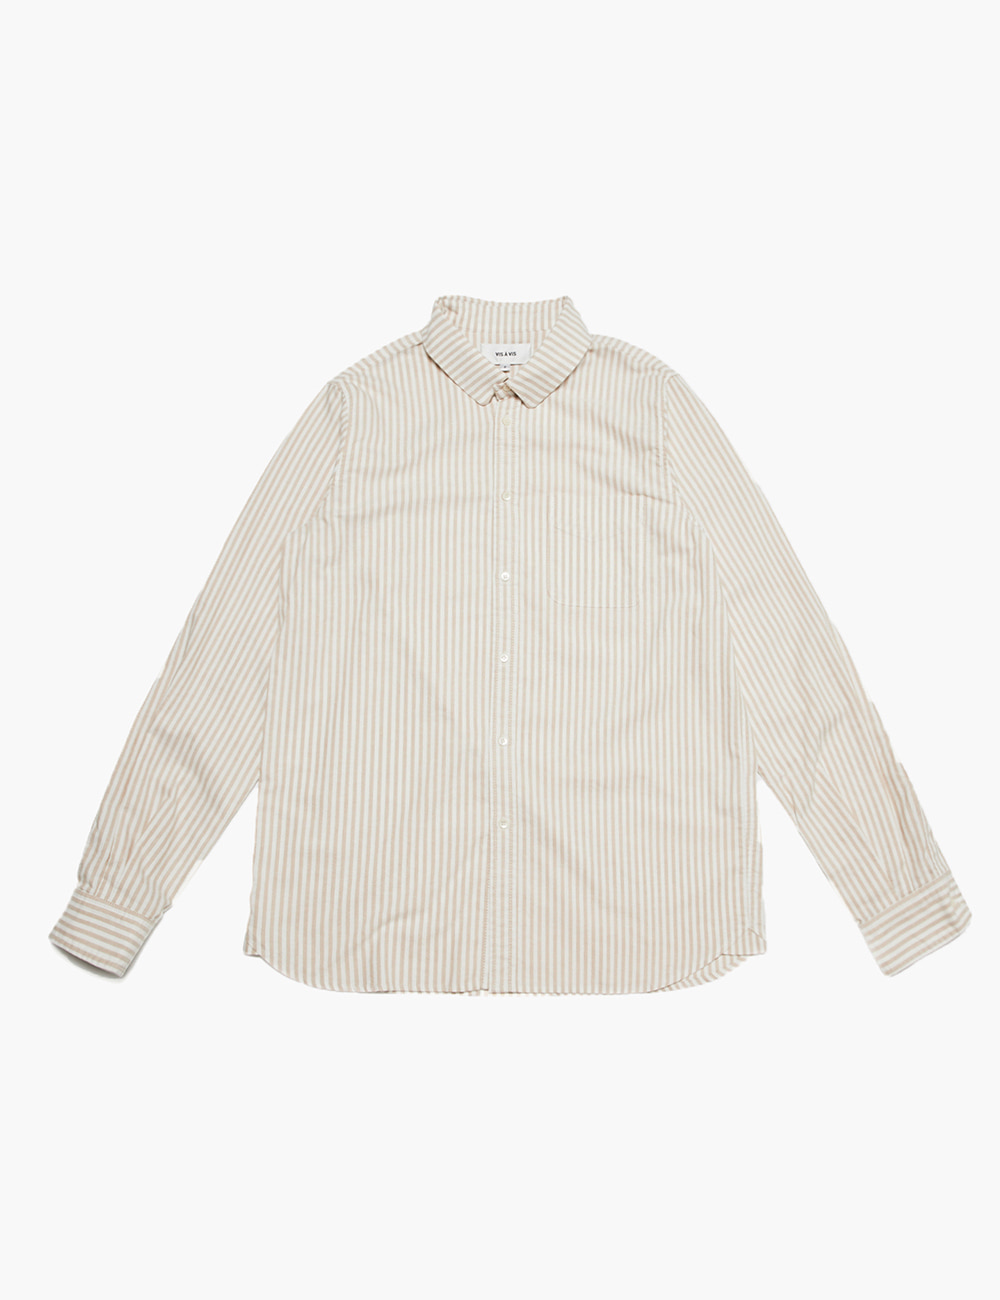 BOTTON DOWN COLLAR SHIRT